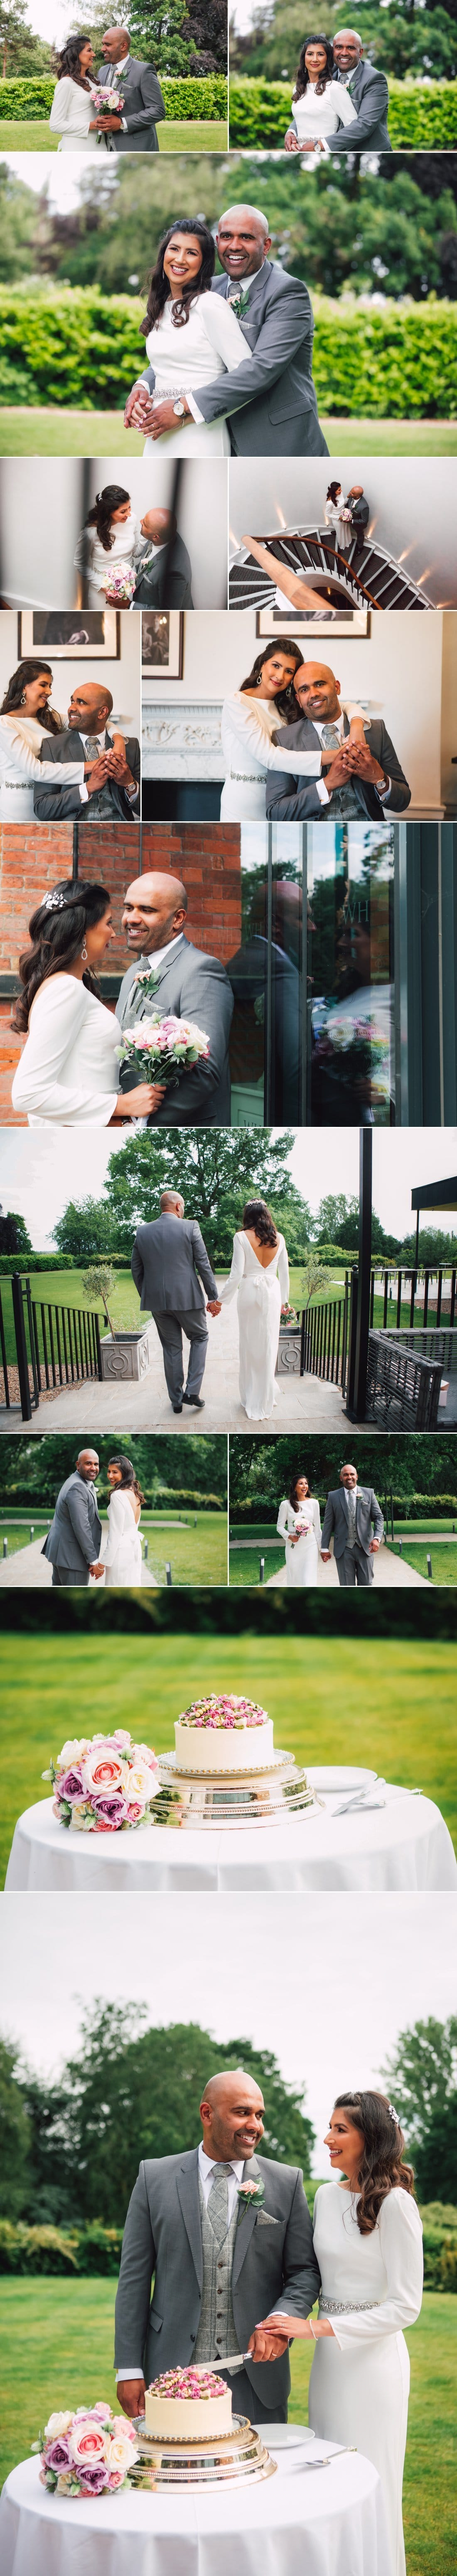 Wedding Photography at Winstanley House - blog 7